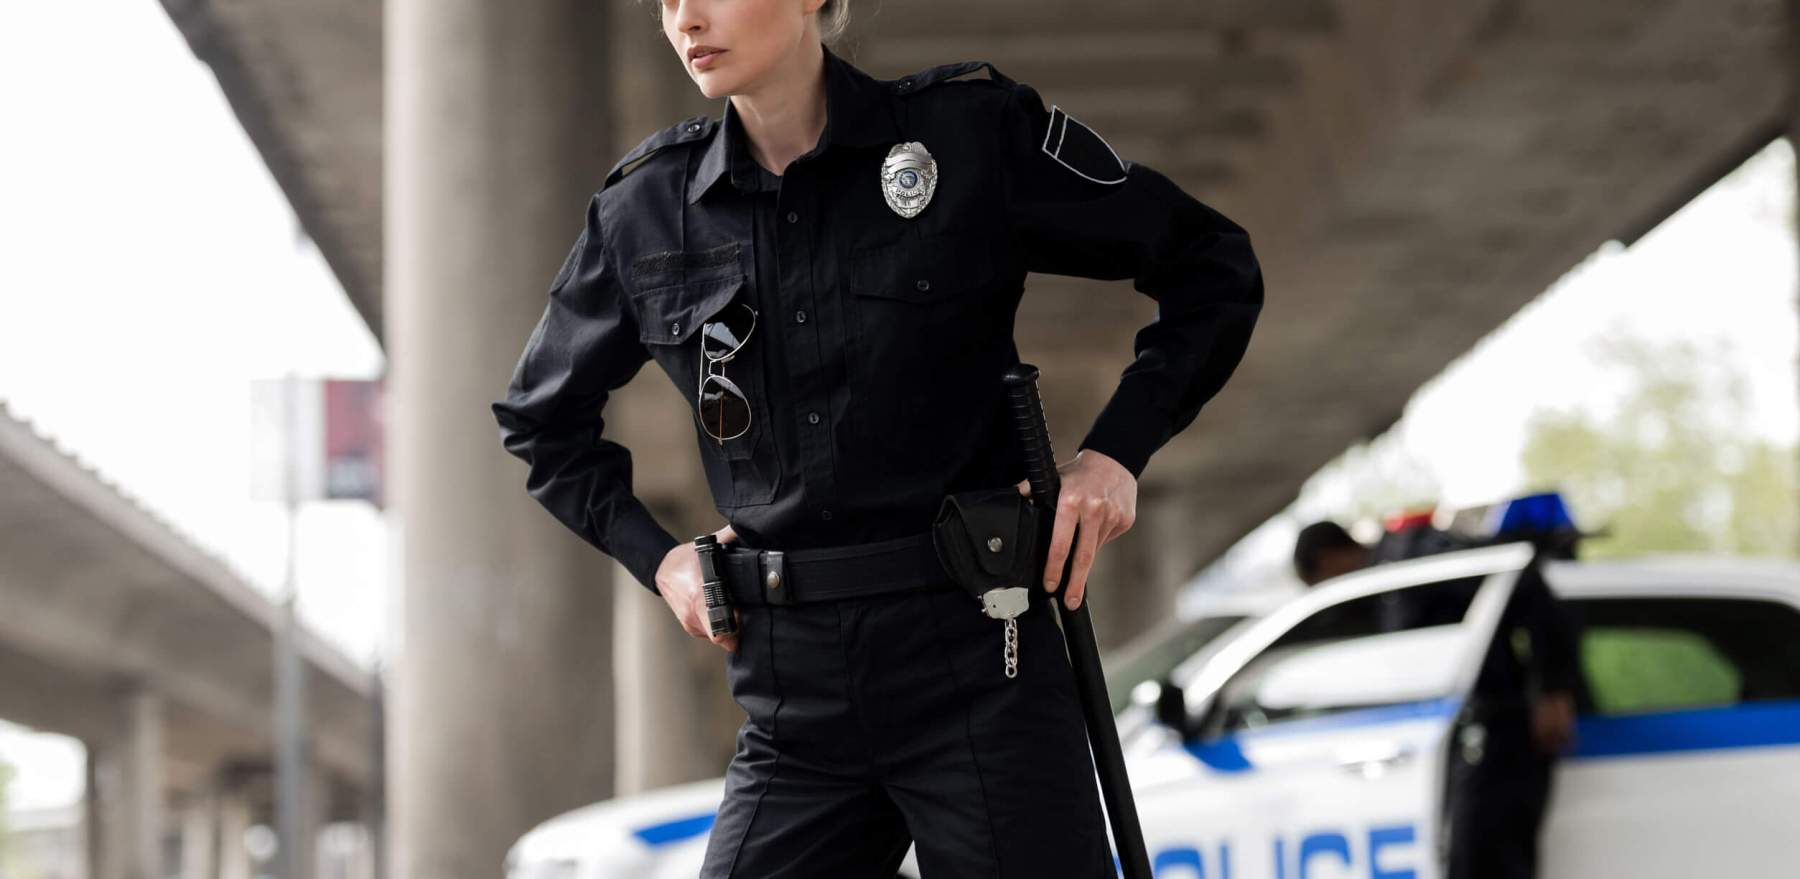 confident female police officer looking away and taking out gun and bat